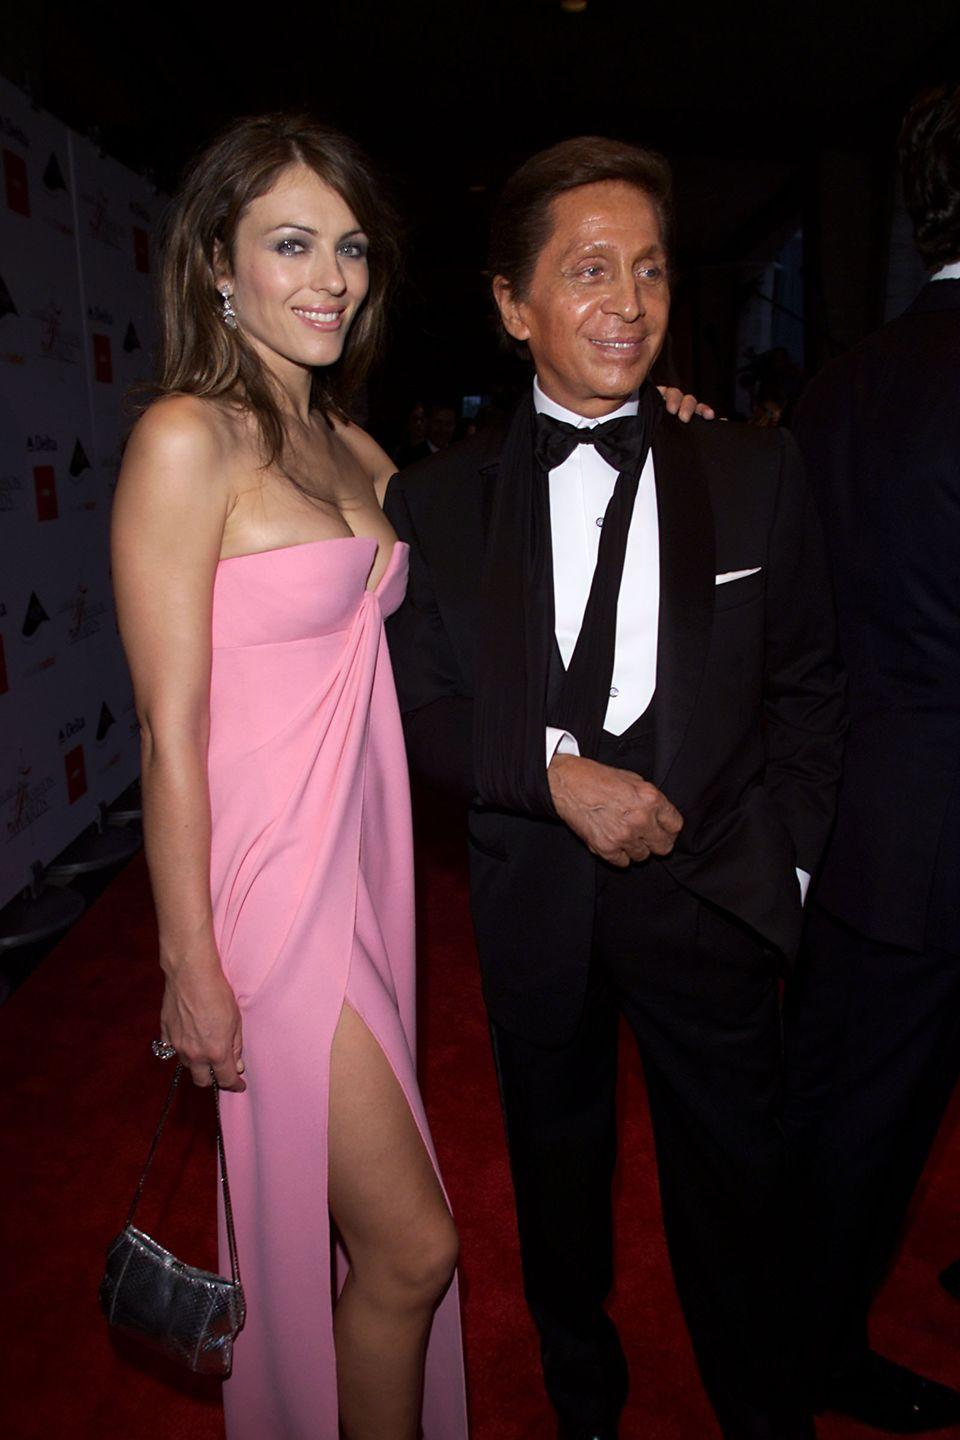 <p>Elizabeth accompanied fashion designer Valentino to the Council of Fashion Designers of America Awards in 2000, at which he was received the Lifetime Achievement Award.</p>